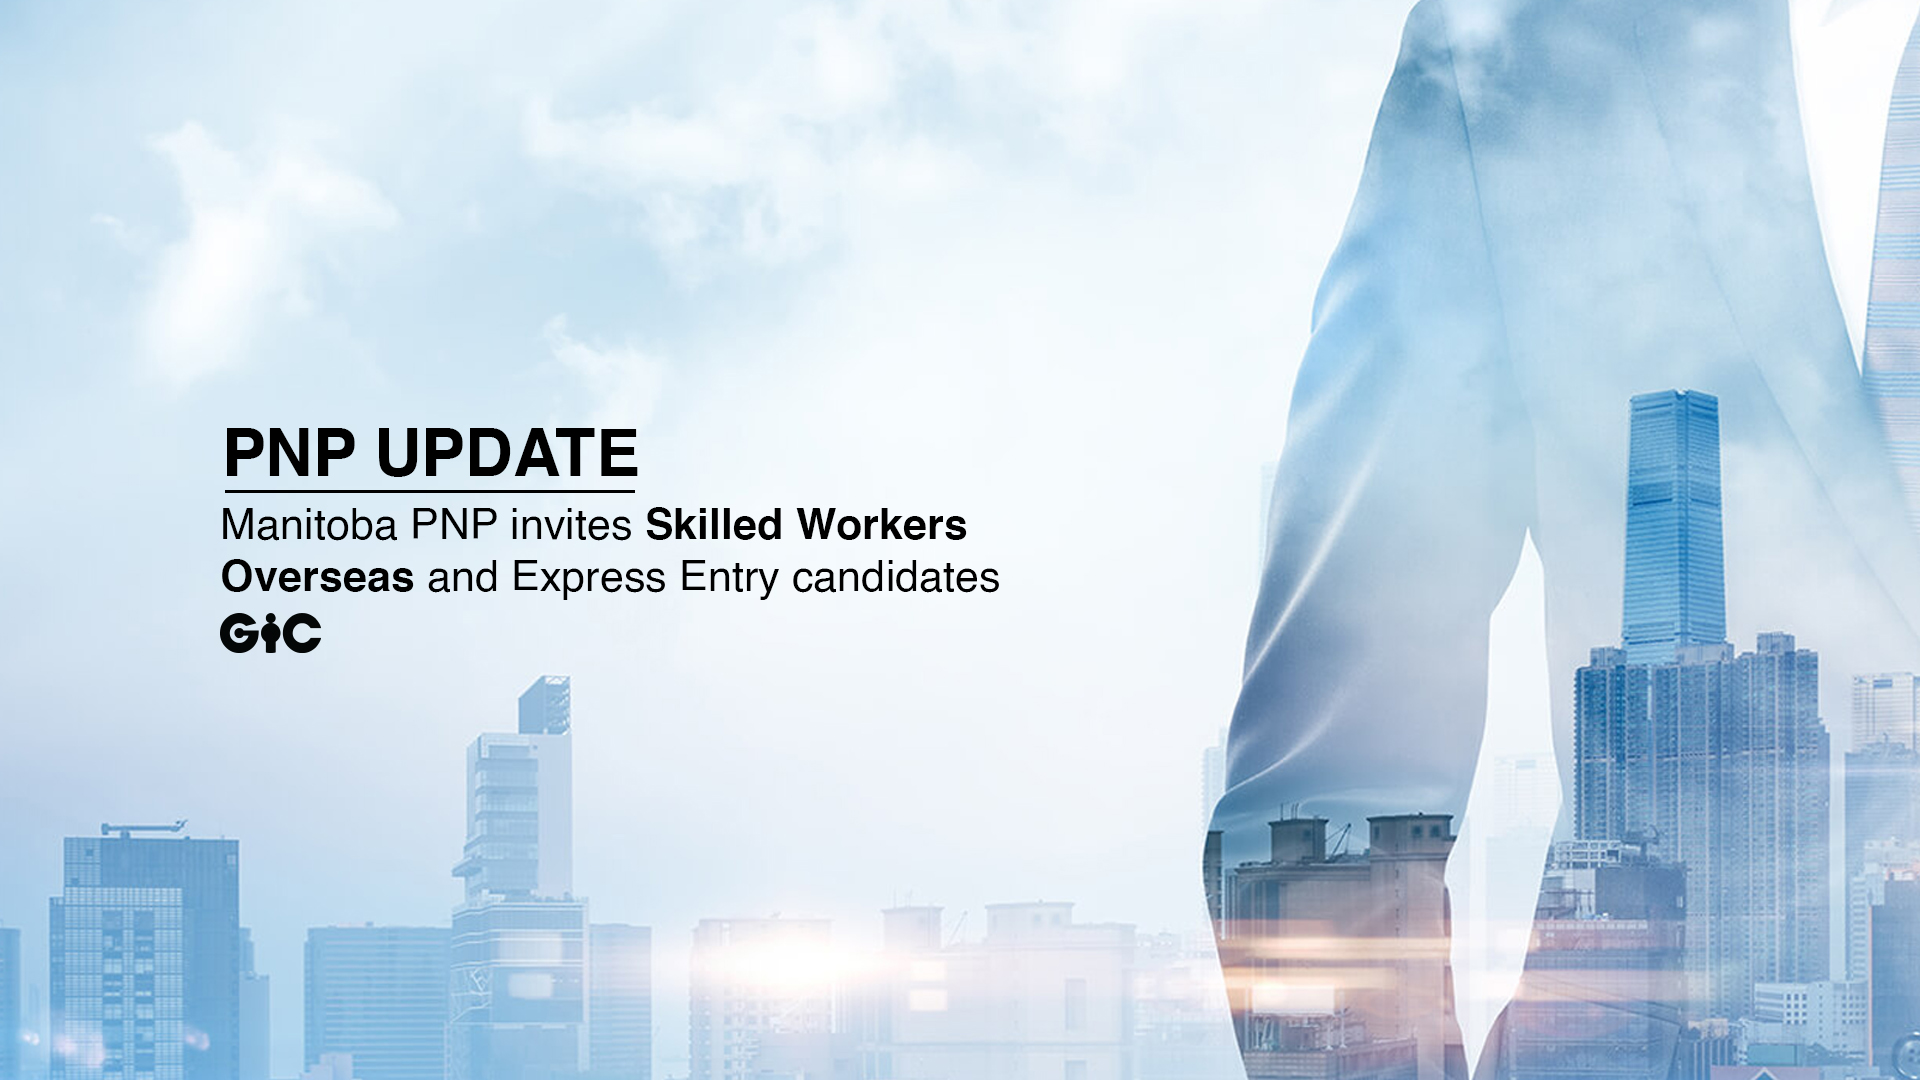 Manitoba PNP invites Skilled Workers Overseas and Express Entry candidates